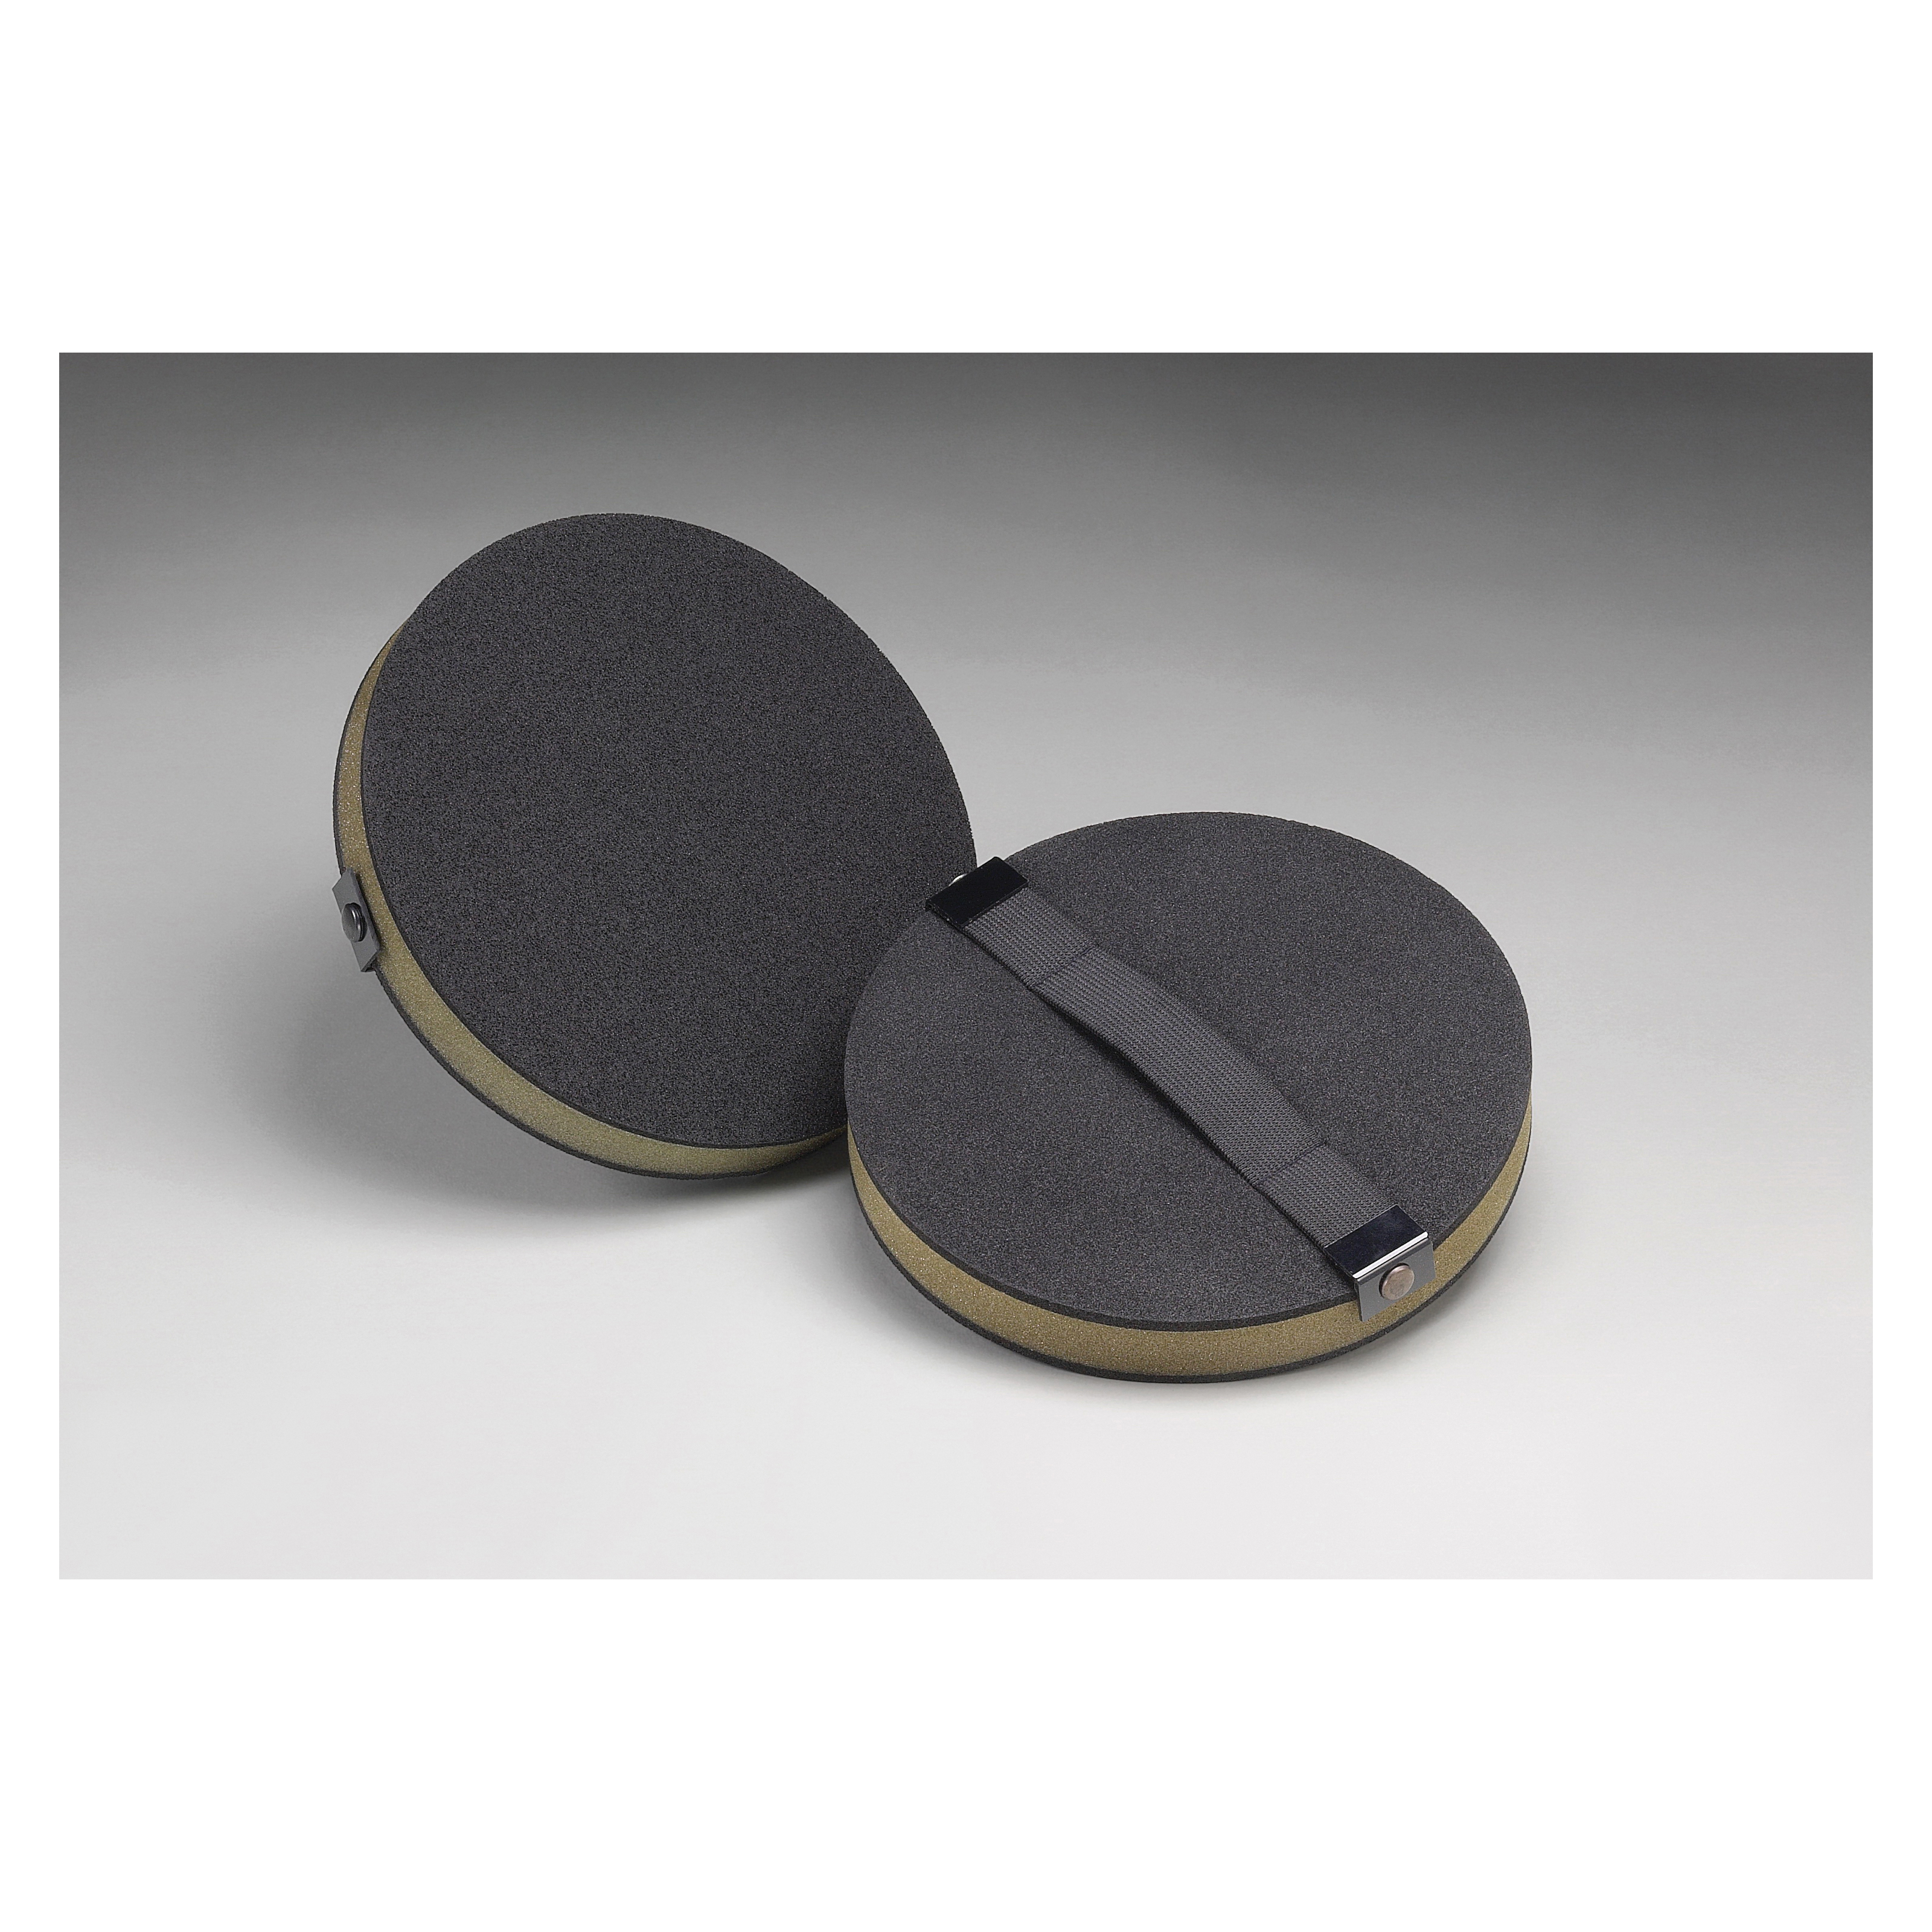 3M™ 051144-82793 Regular Soft Density Hand Pad, 8 in Dia Pad, Mechanical Attachment